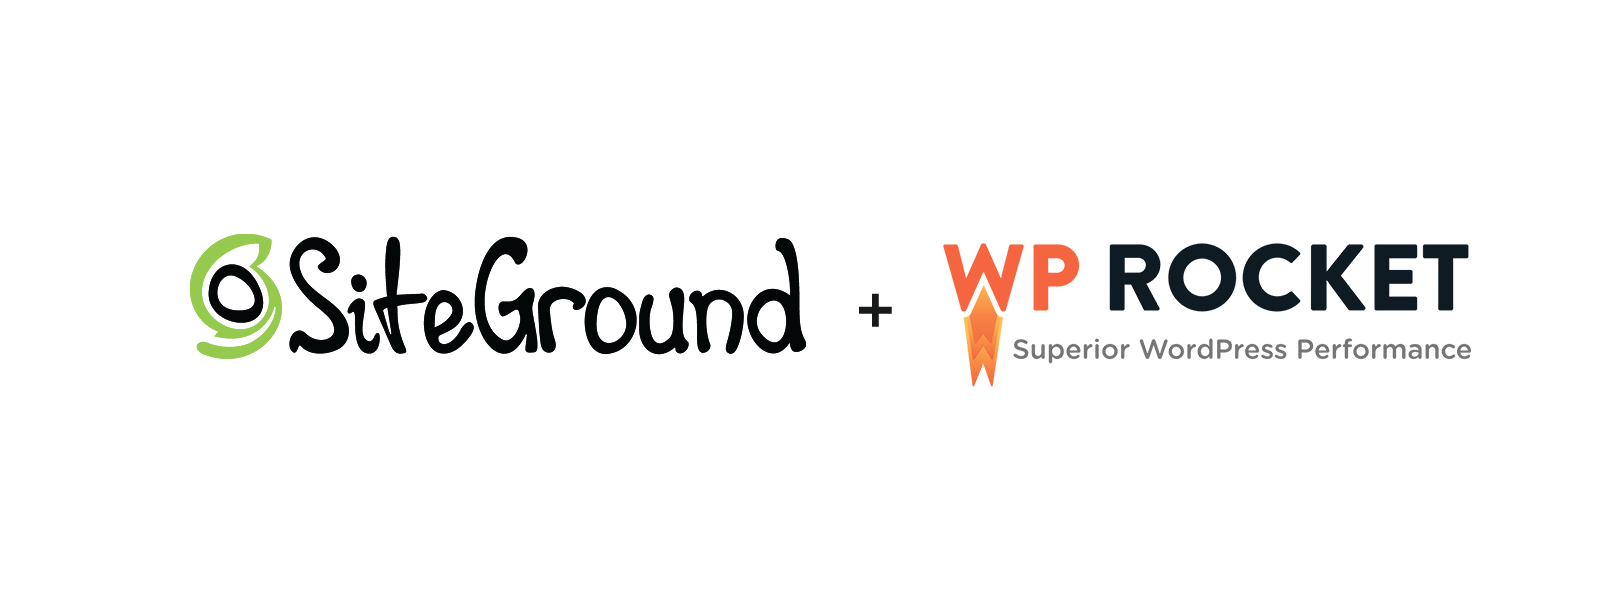 SiteGround with WP Rocket